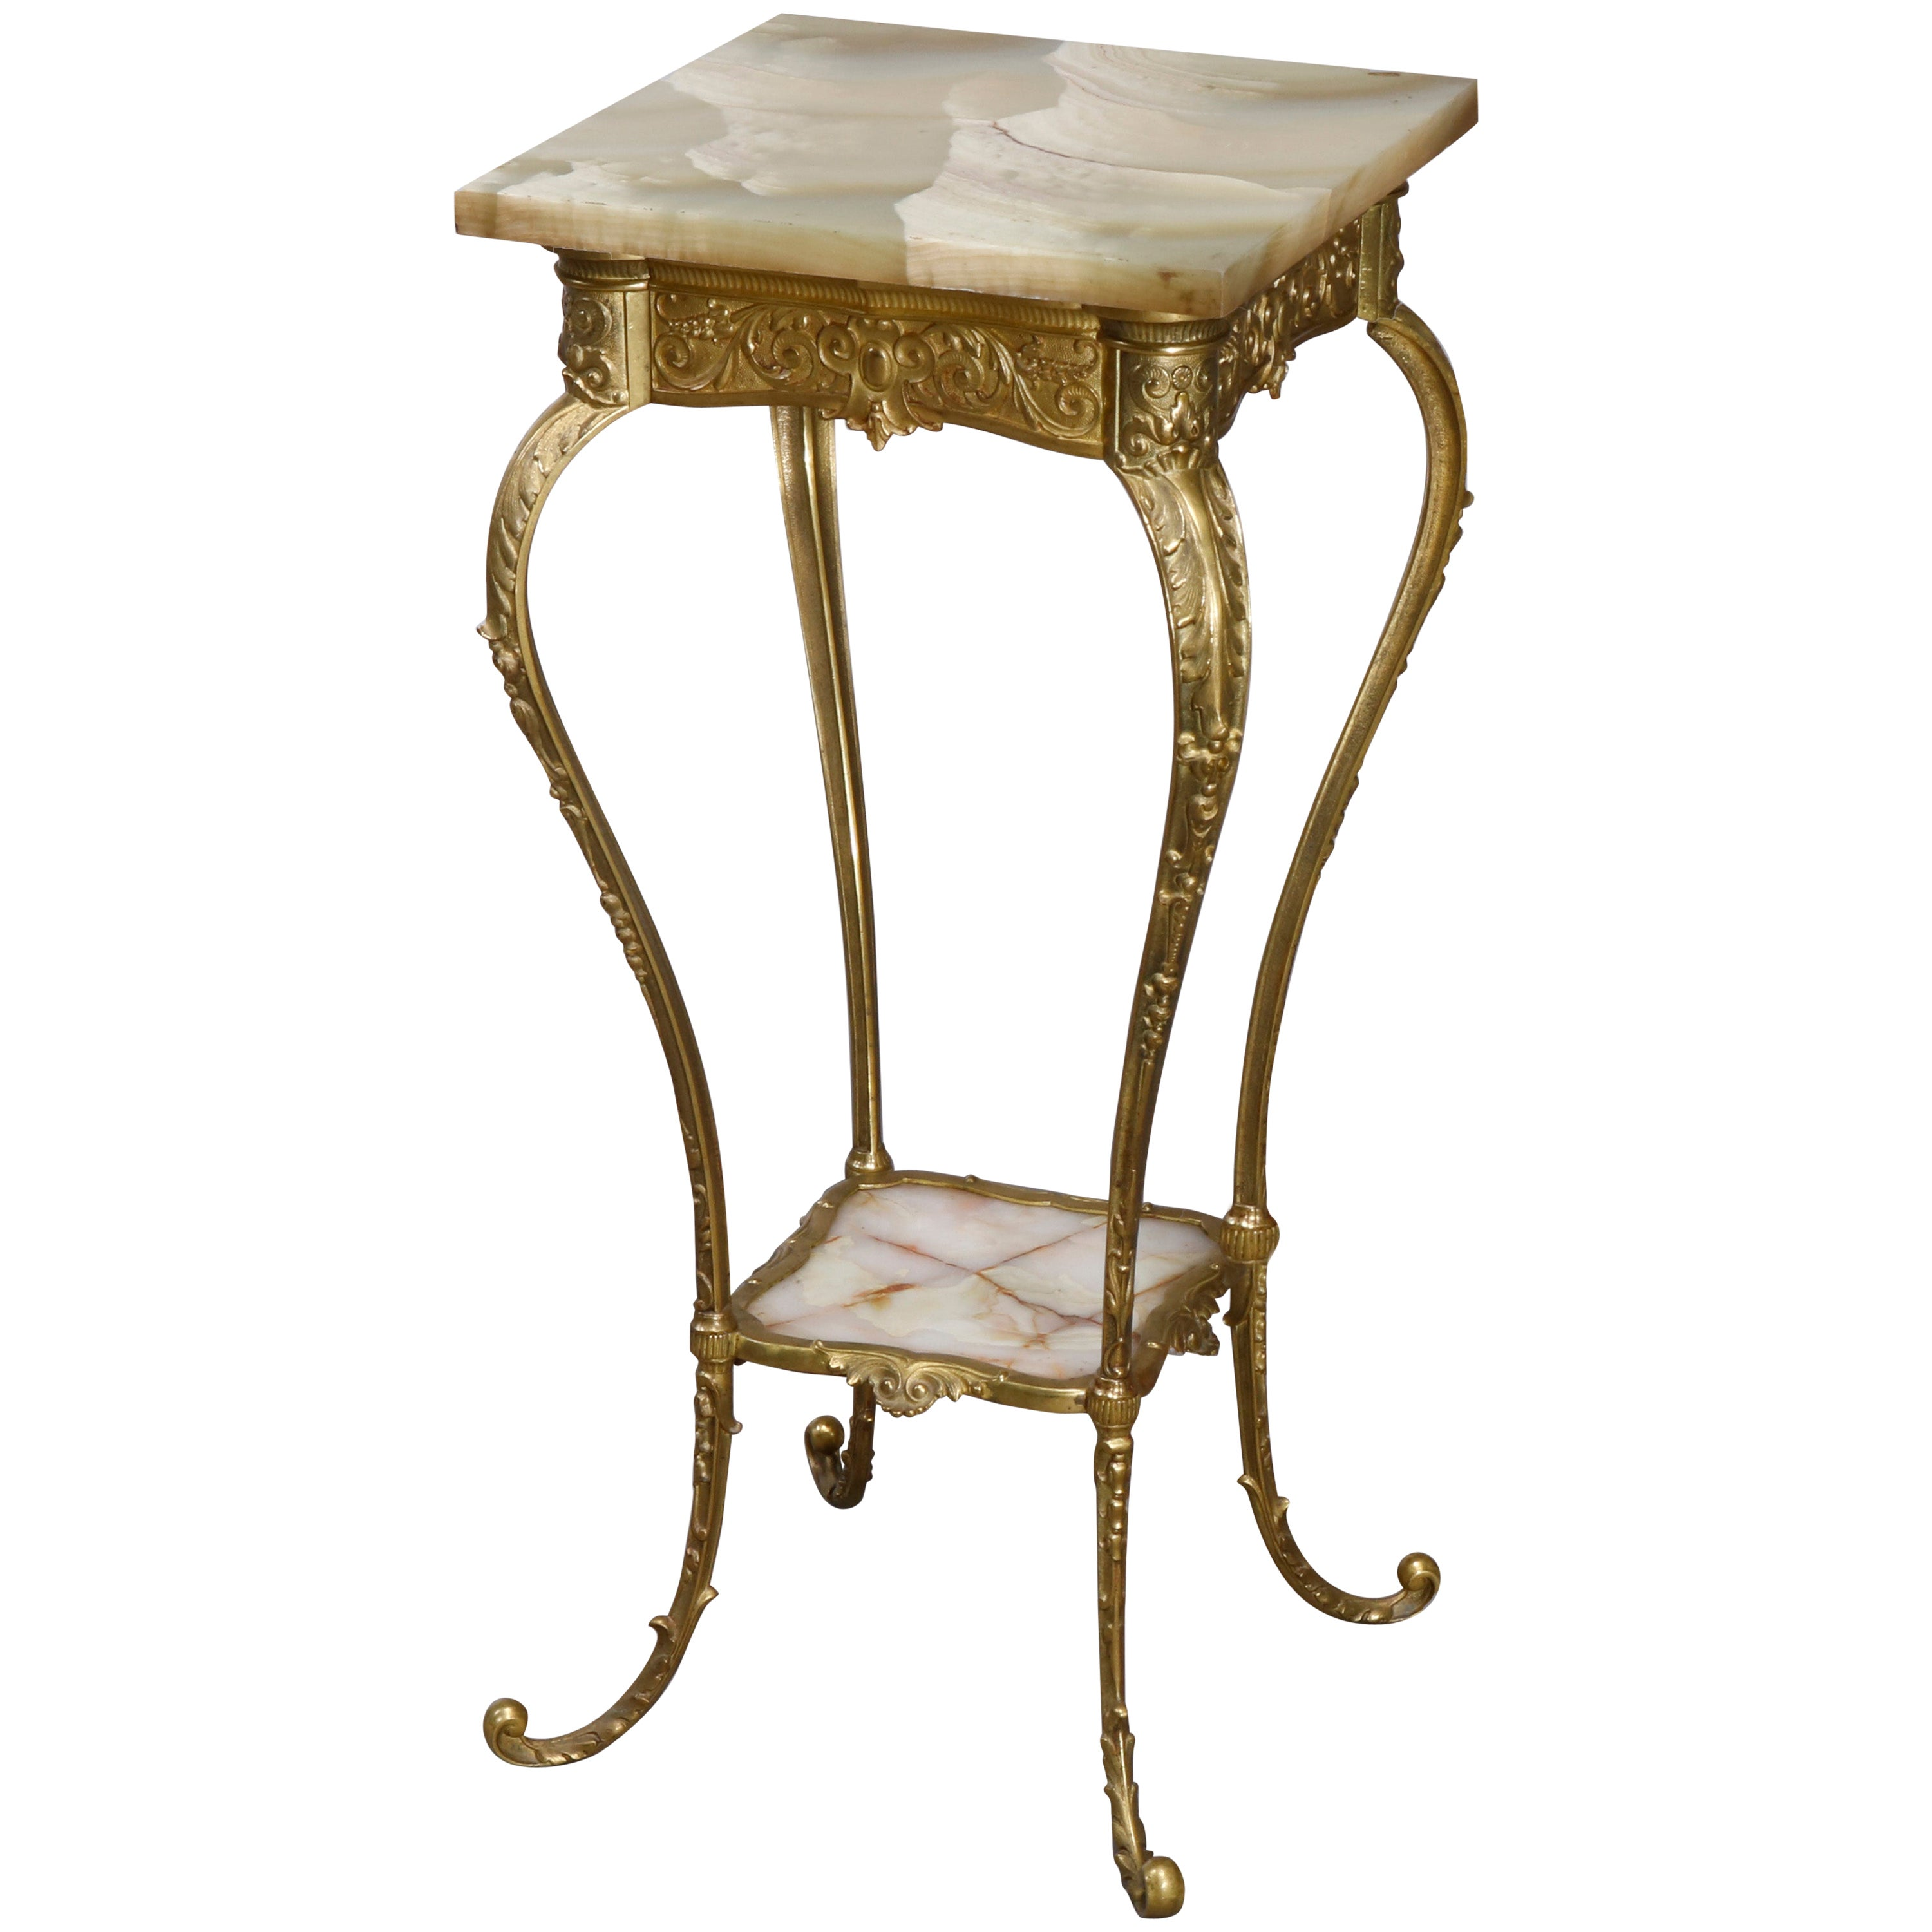 Antique French Victorian Bronze and Green Onyx Fern Stand, circa 1890